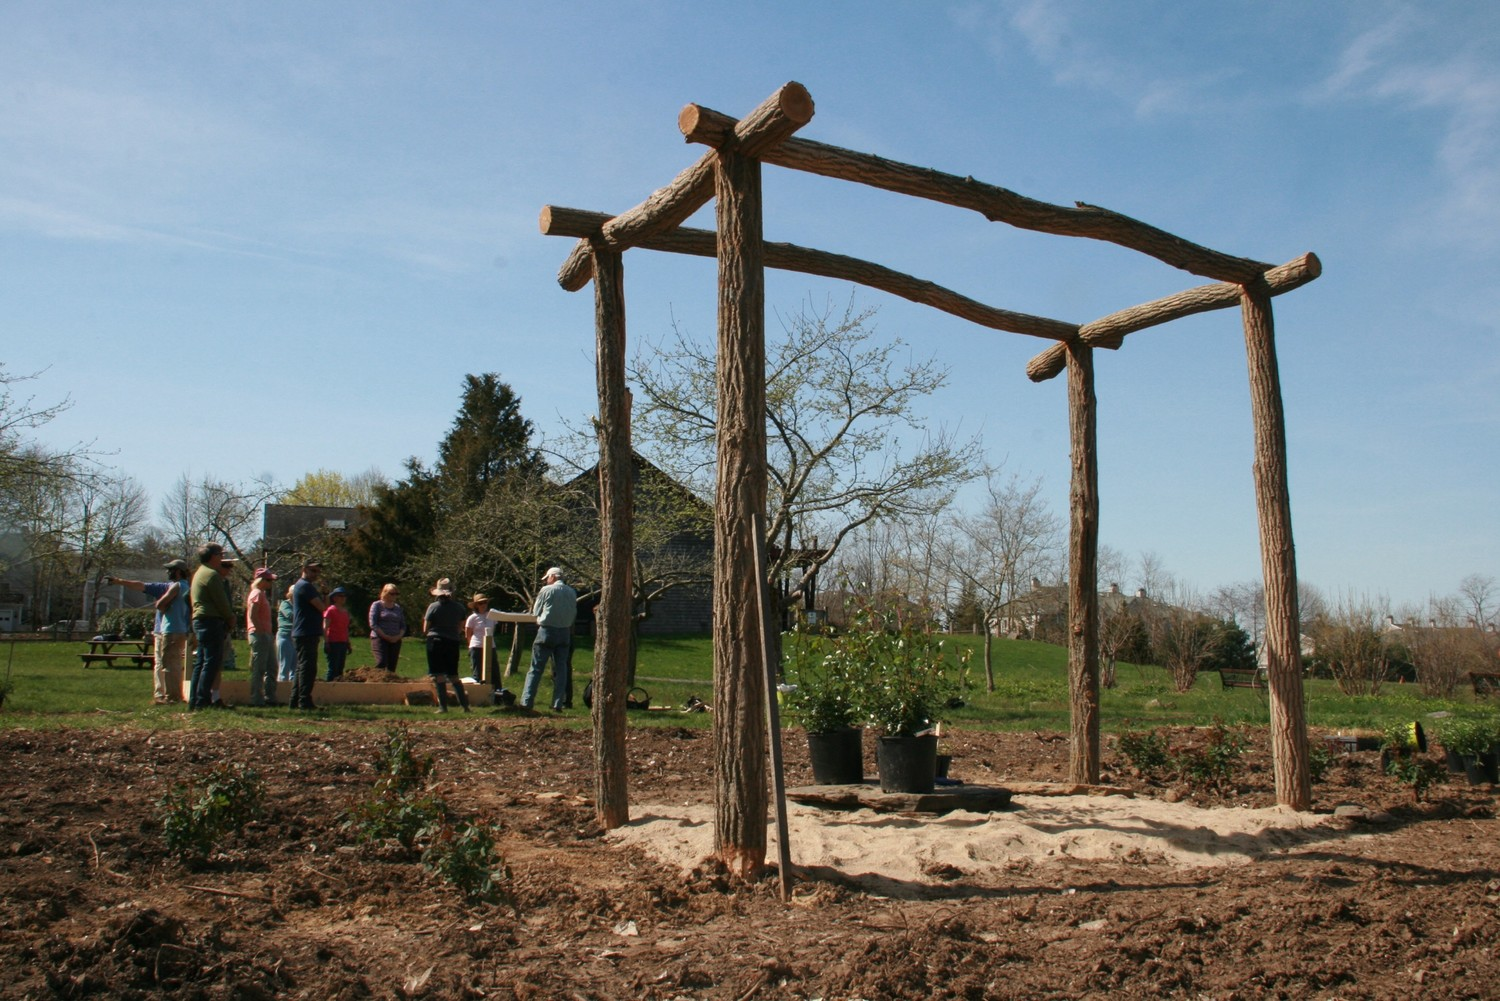 Volunteer gardeners gather behind the installed arbor as they listen to directions from Little Compton garden designer John Gwynne.